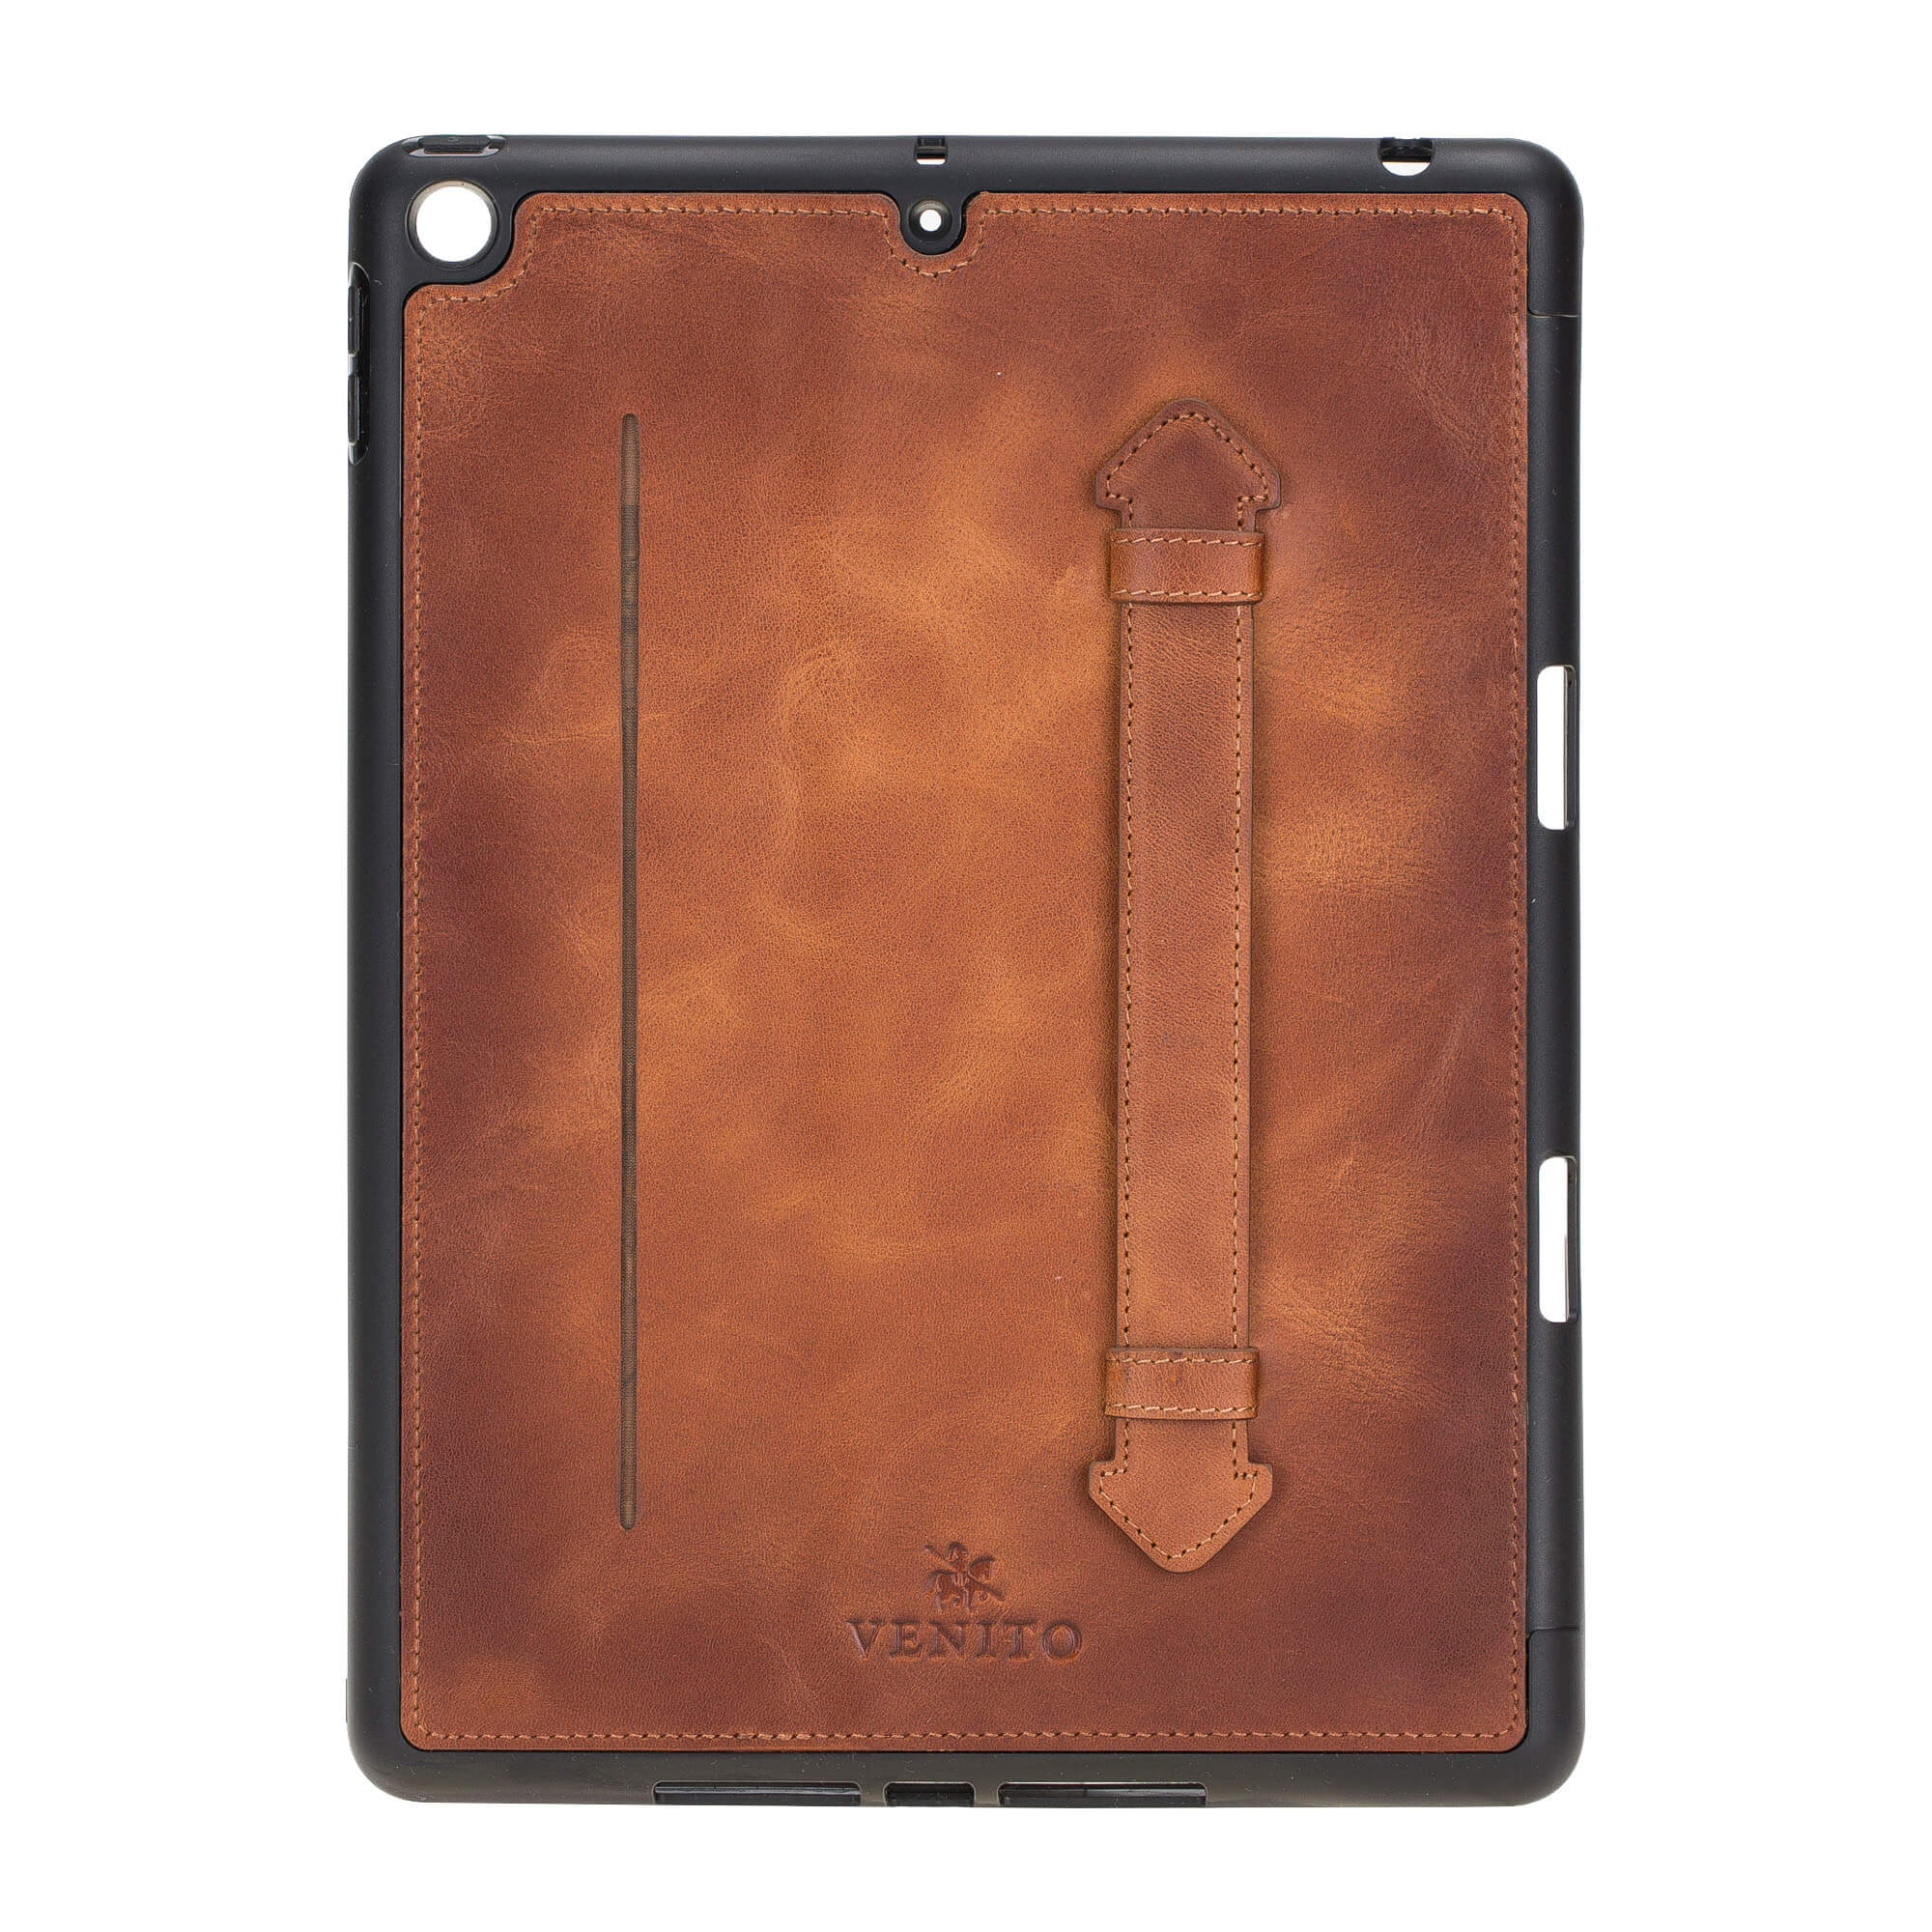 Lecce Leather Wallet Case for iPad 10.2 inch